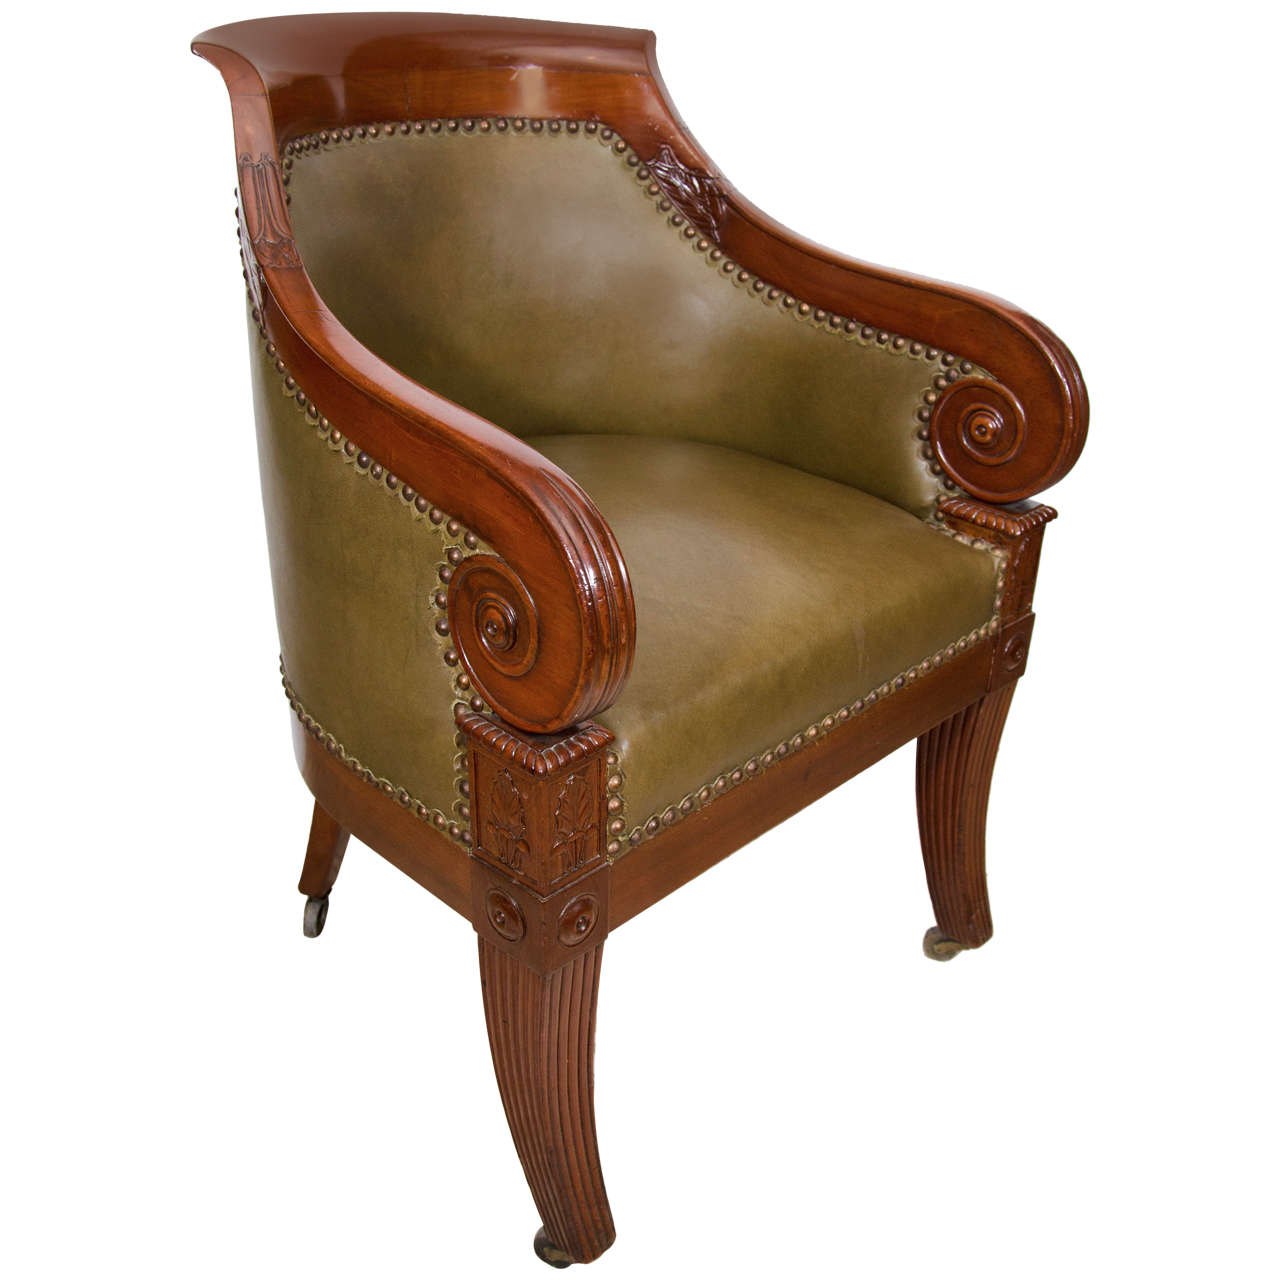 Regency carved mahogany tub chair at stdibs